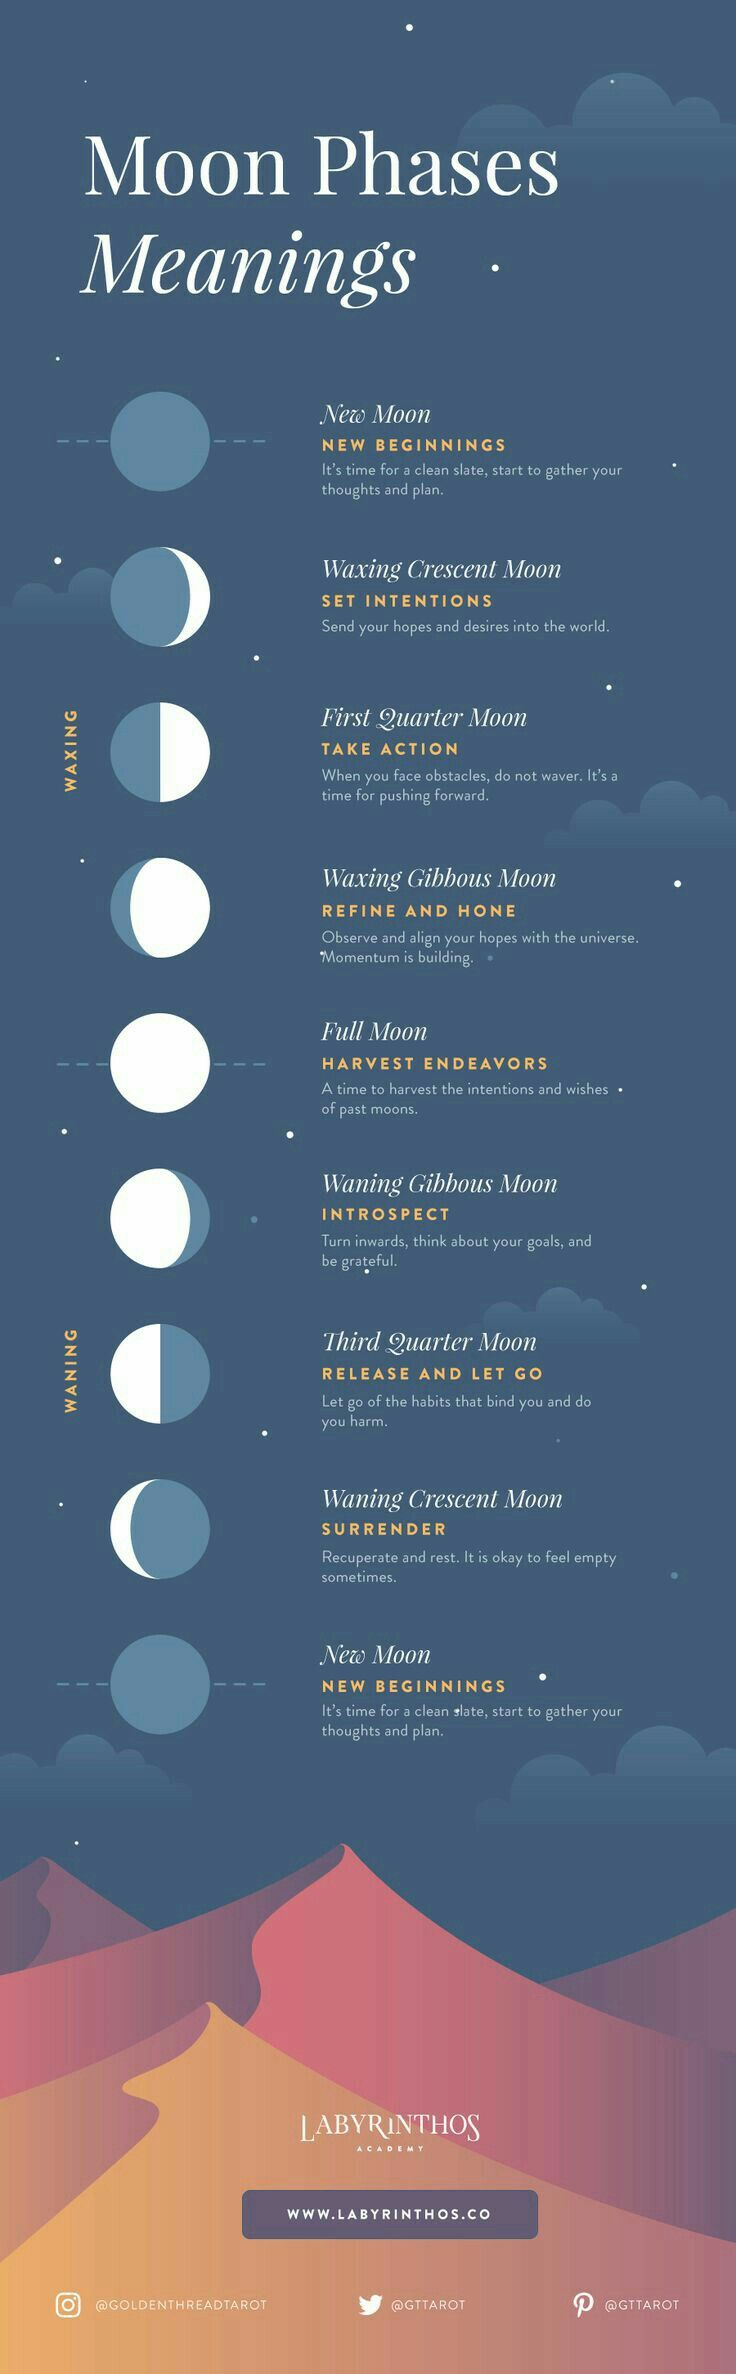 moon phases meanings